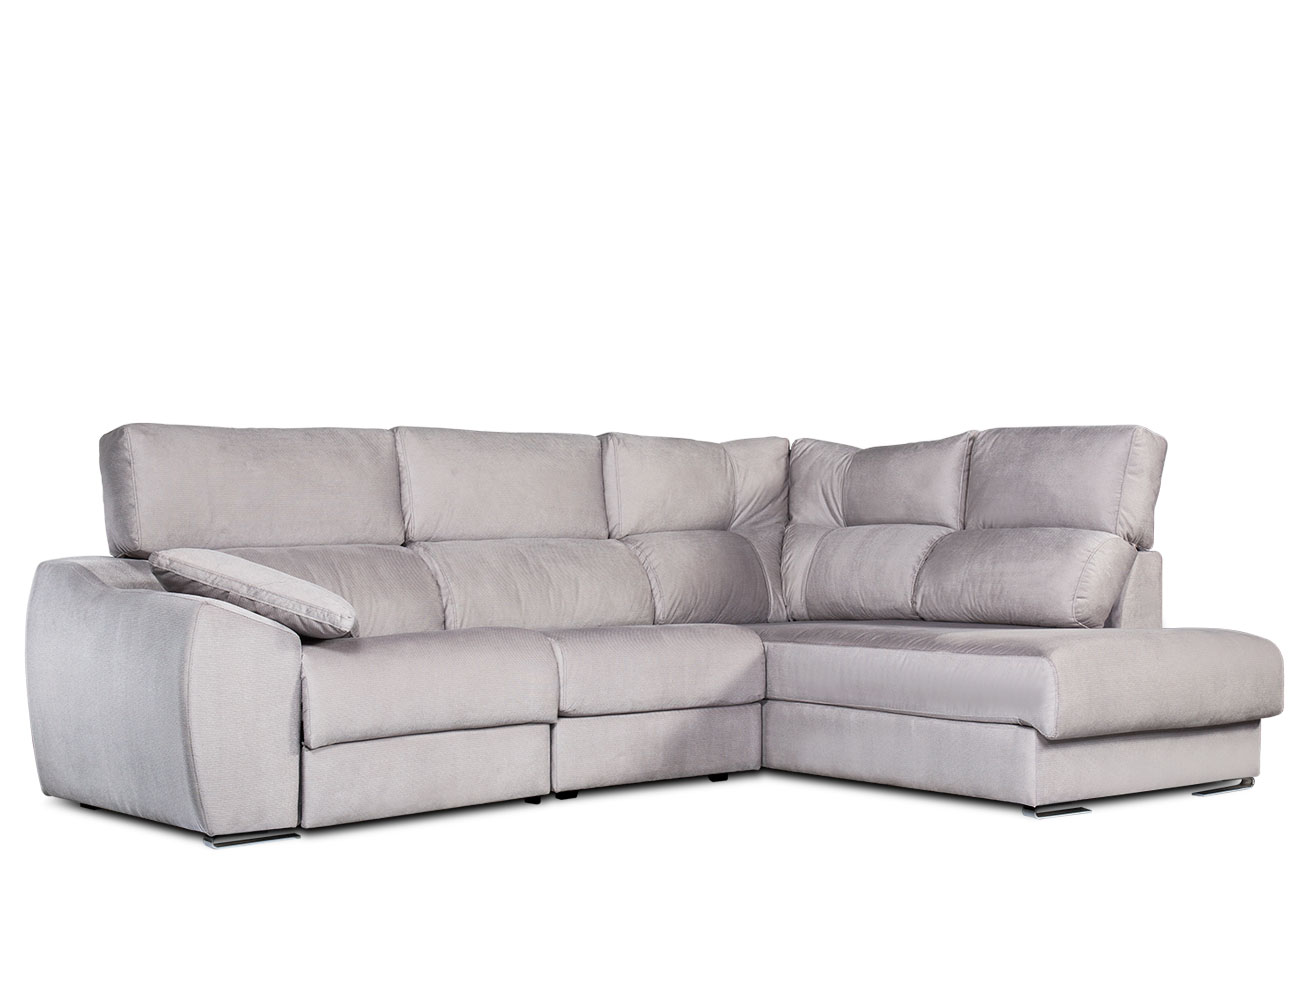 Sofa chaiselongue rincon electrico